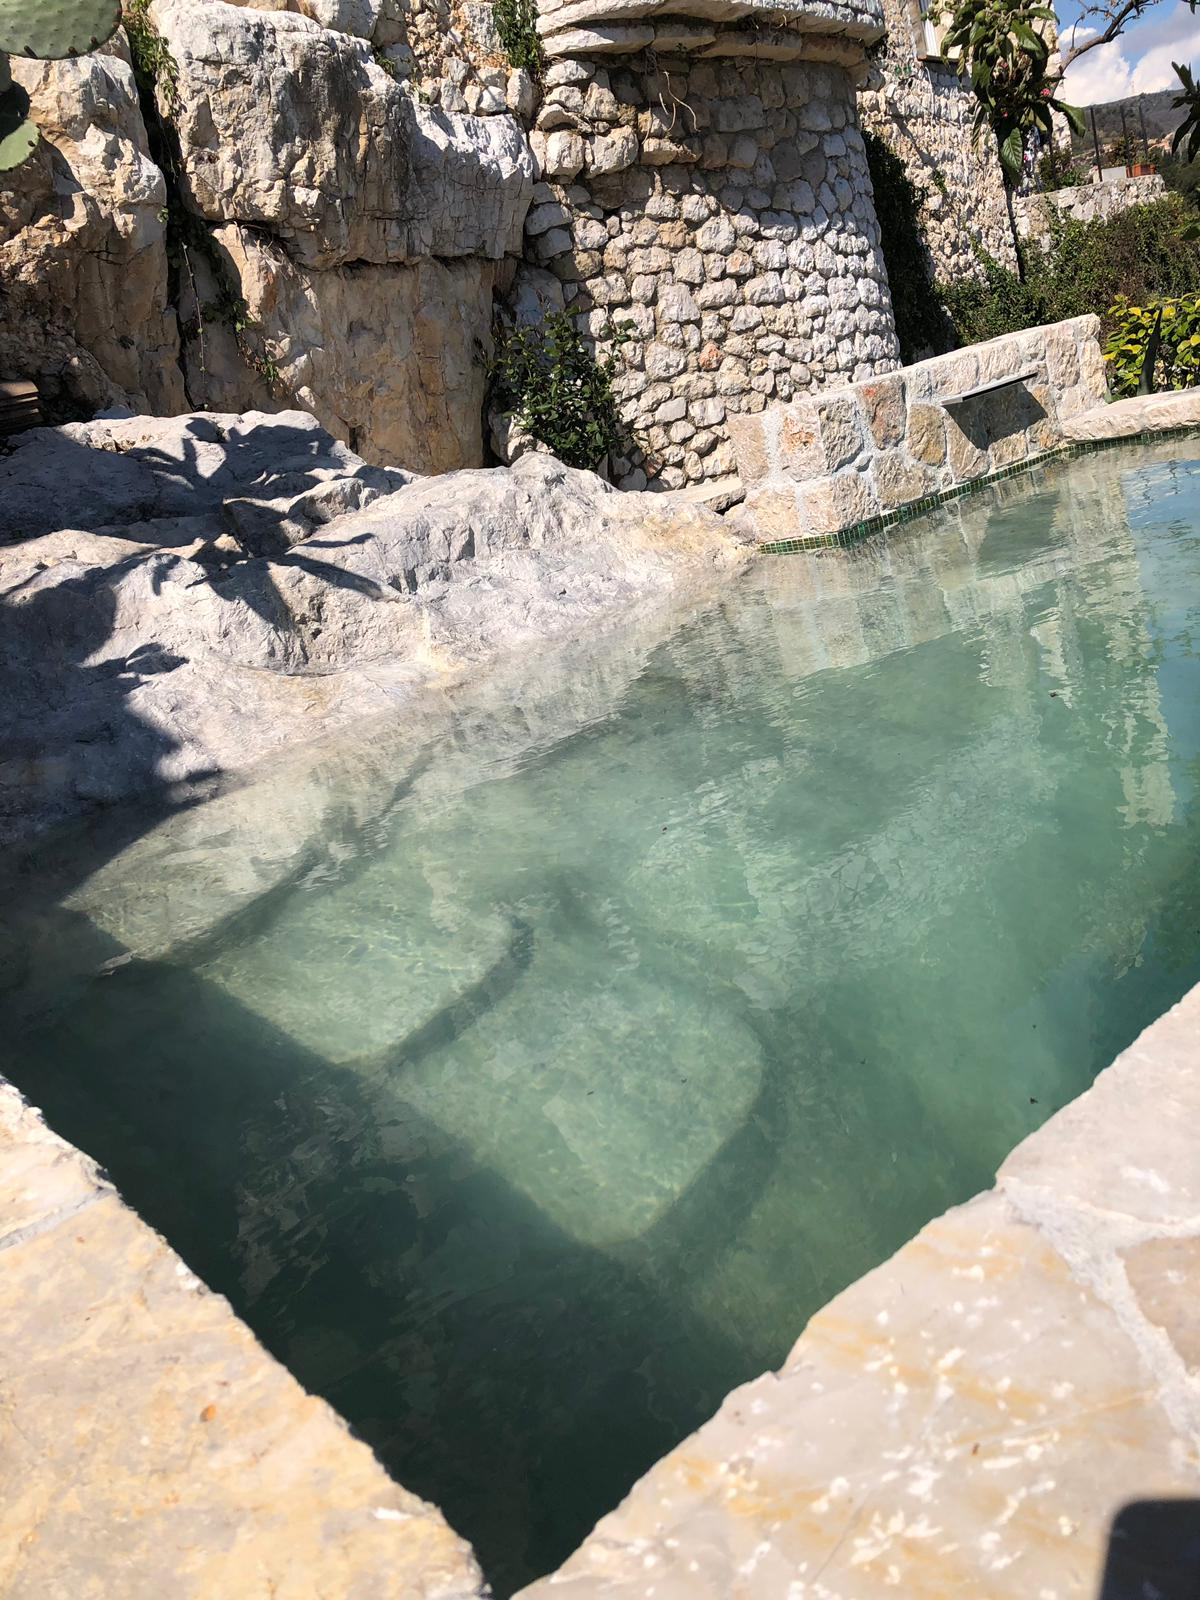 10-renovation-piscine-chantier-tourette-sur-loup